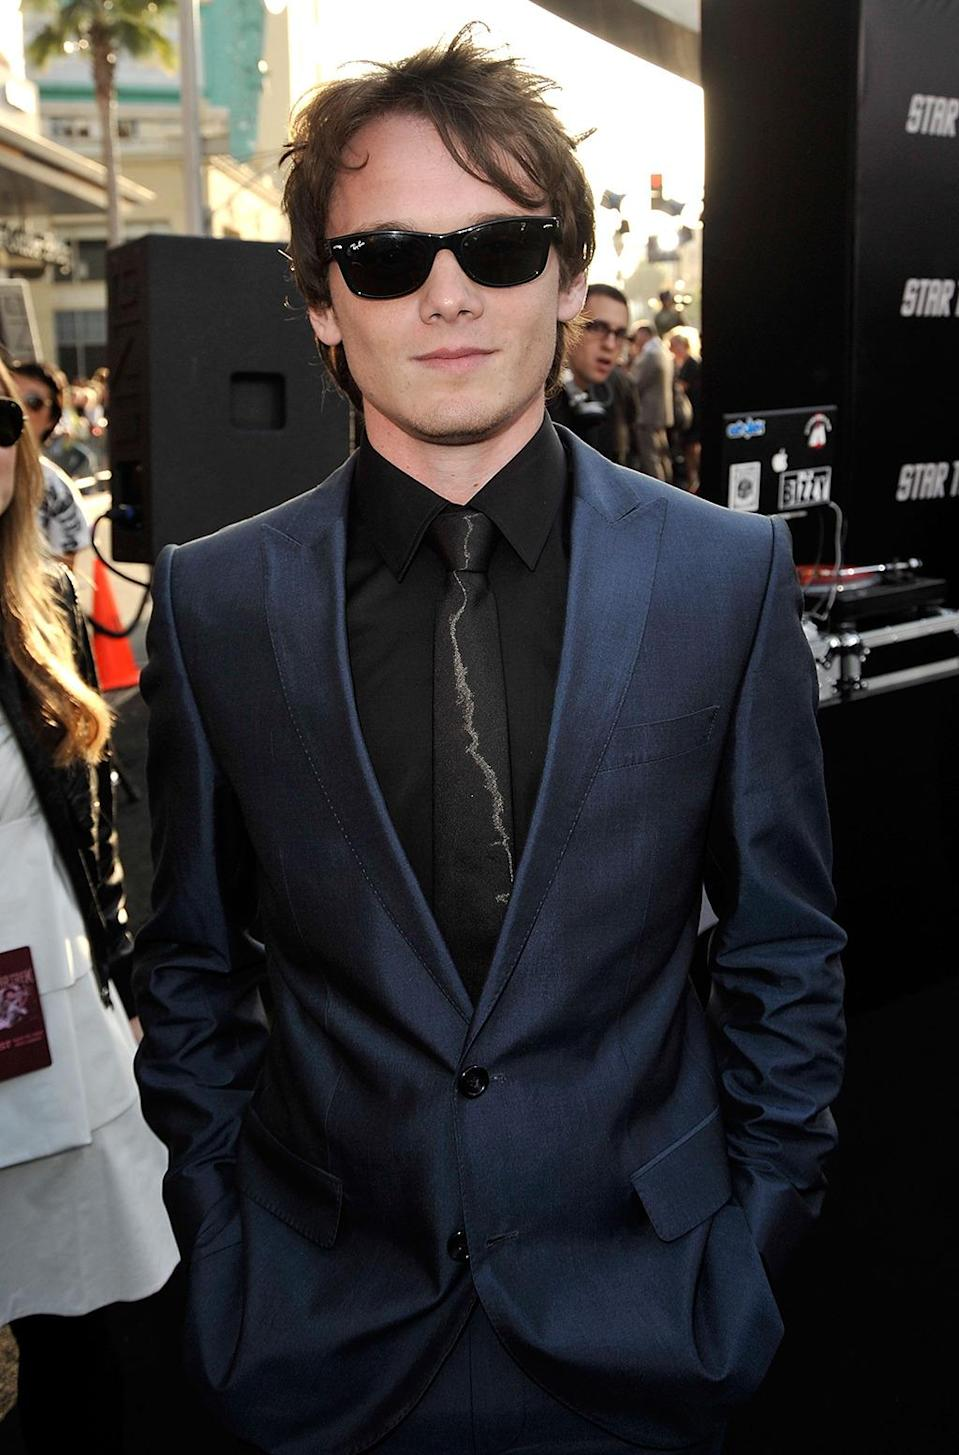 "<p>Anton Yelchin (Chekov) poses at the L.A. premiere. He would pass away in a car accident in 2016; <i>Star Trek Beyond </i>is <a href=""http://www.thedailybeast.com/articles/2016/07/15/star-trek-beyond-review-you-will-mourn-anton-yelchin-but-find-hope-in-its-unifying-message.html"" rel=""nofollow noopener"" target=""_blank"" data-ylk=""slk:partly dedicated"" class=""link rapid-noclick-resp"">partly dedicated</a> to him. <i>(Photo: Kevin Winter/Getty Images)</i></p>"